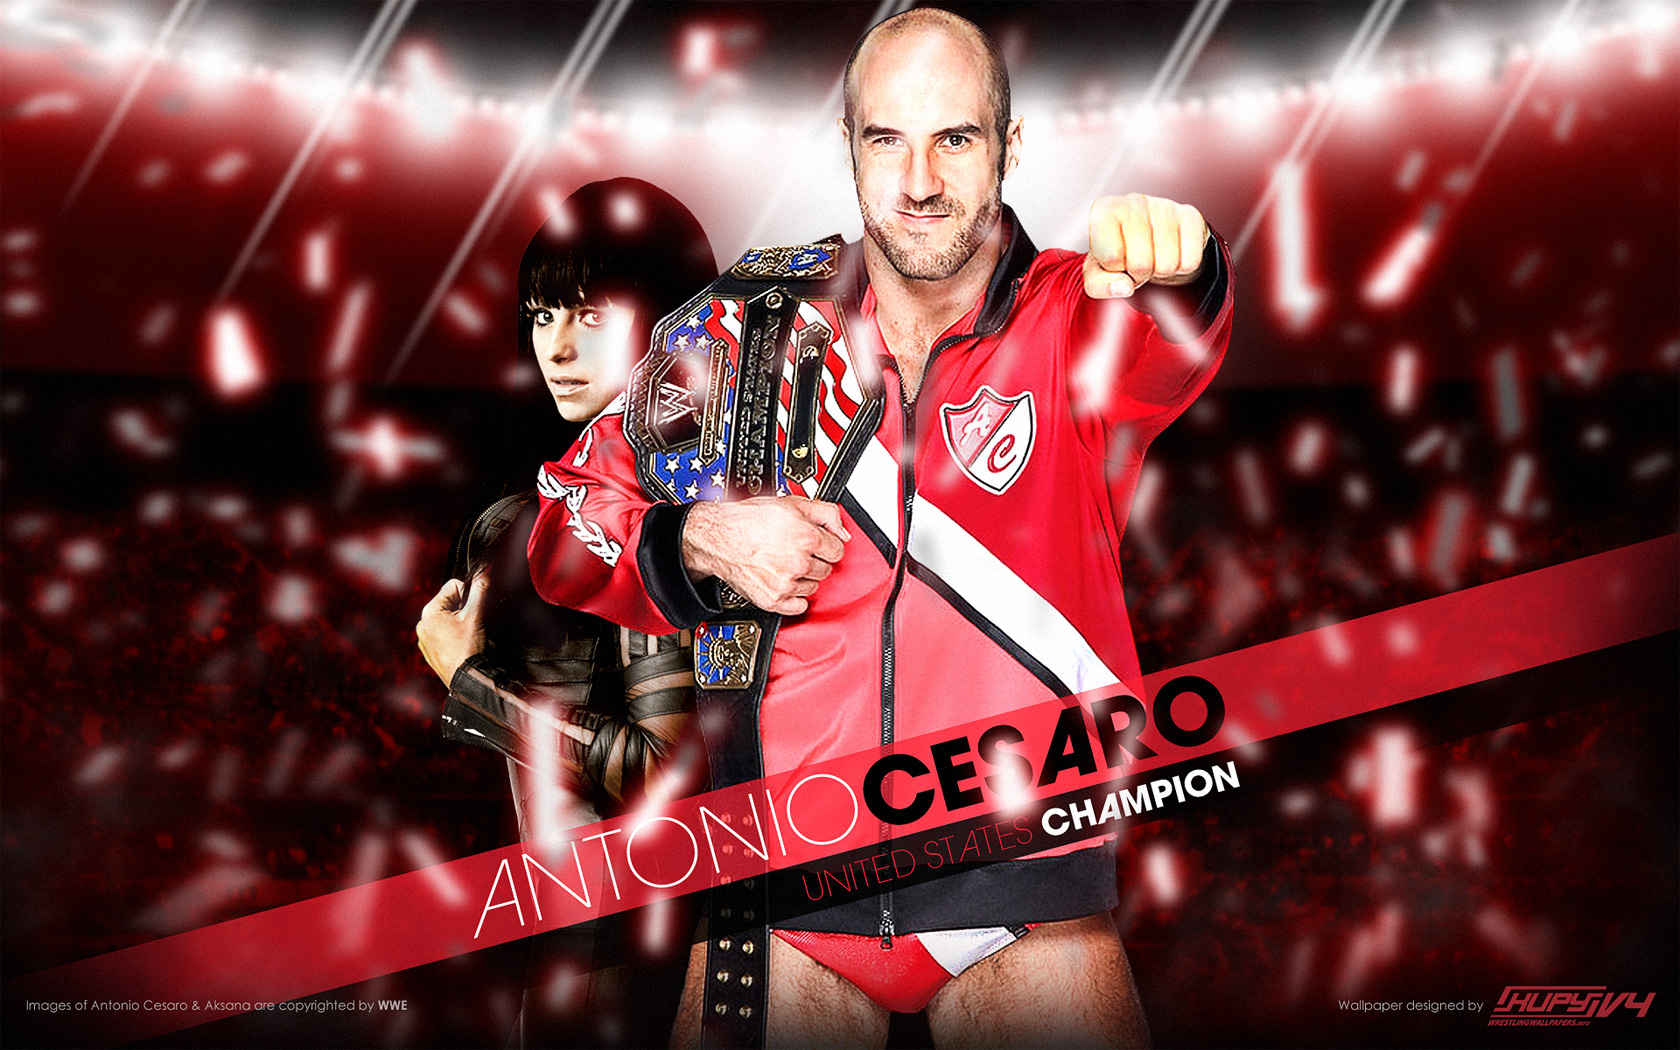 http://www.kupywrestlingwallpapers.info/wallpapers/antonio-cesaro-wallpaper-1680x1050.jpg